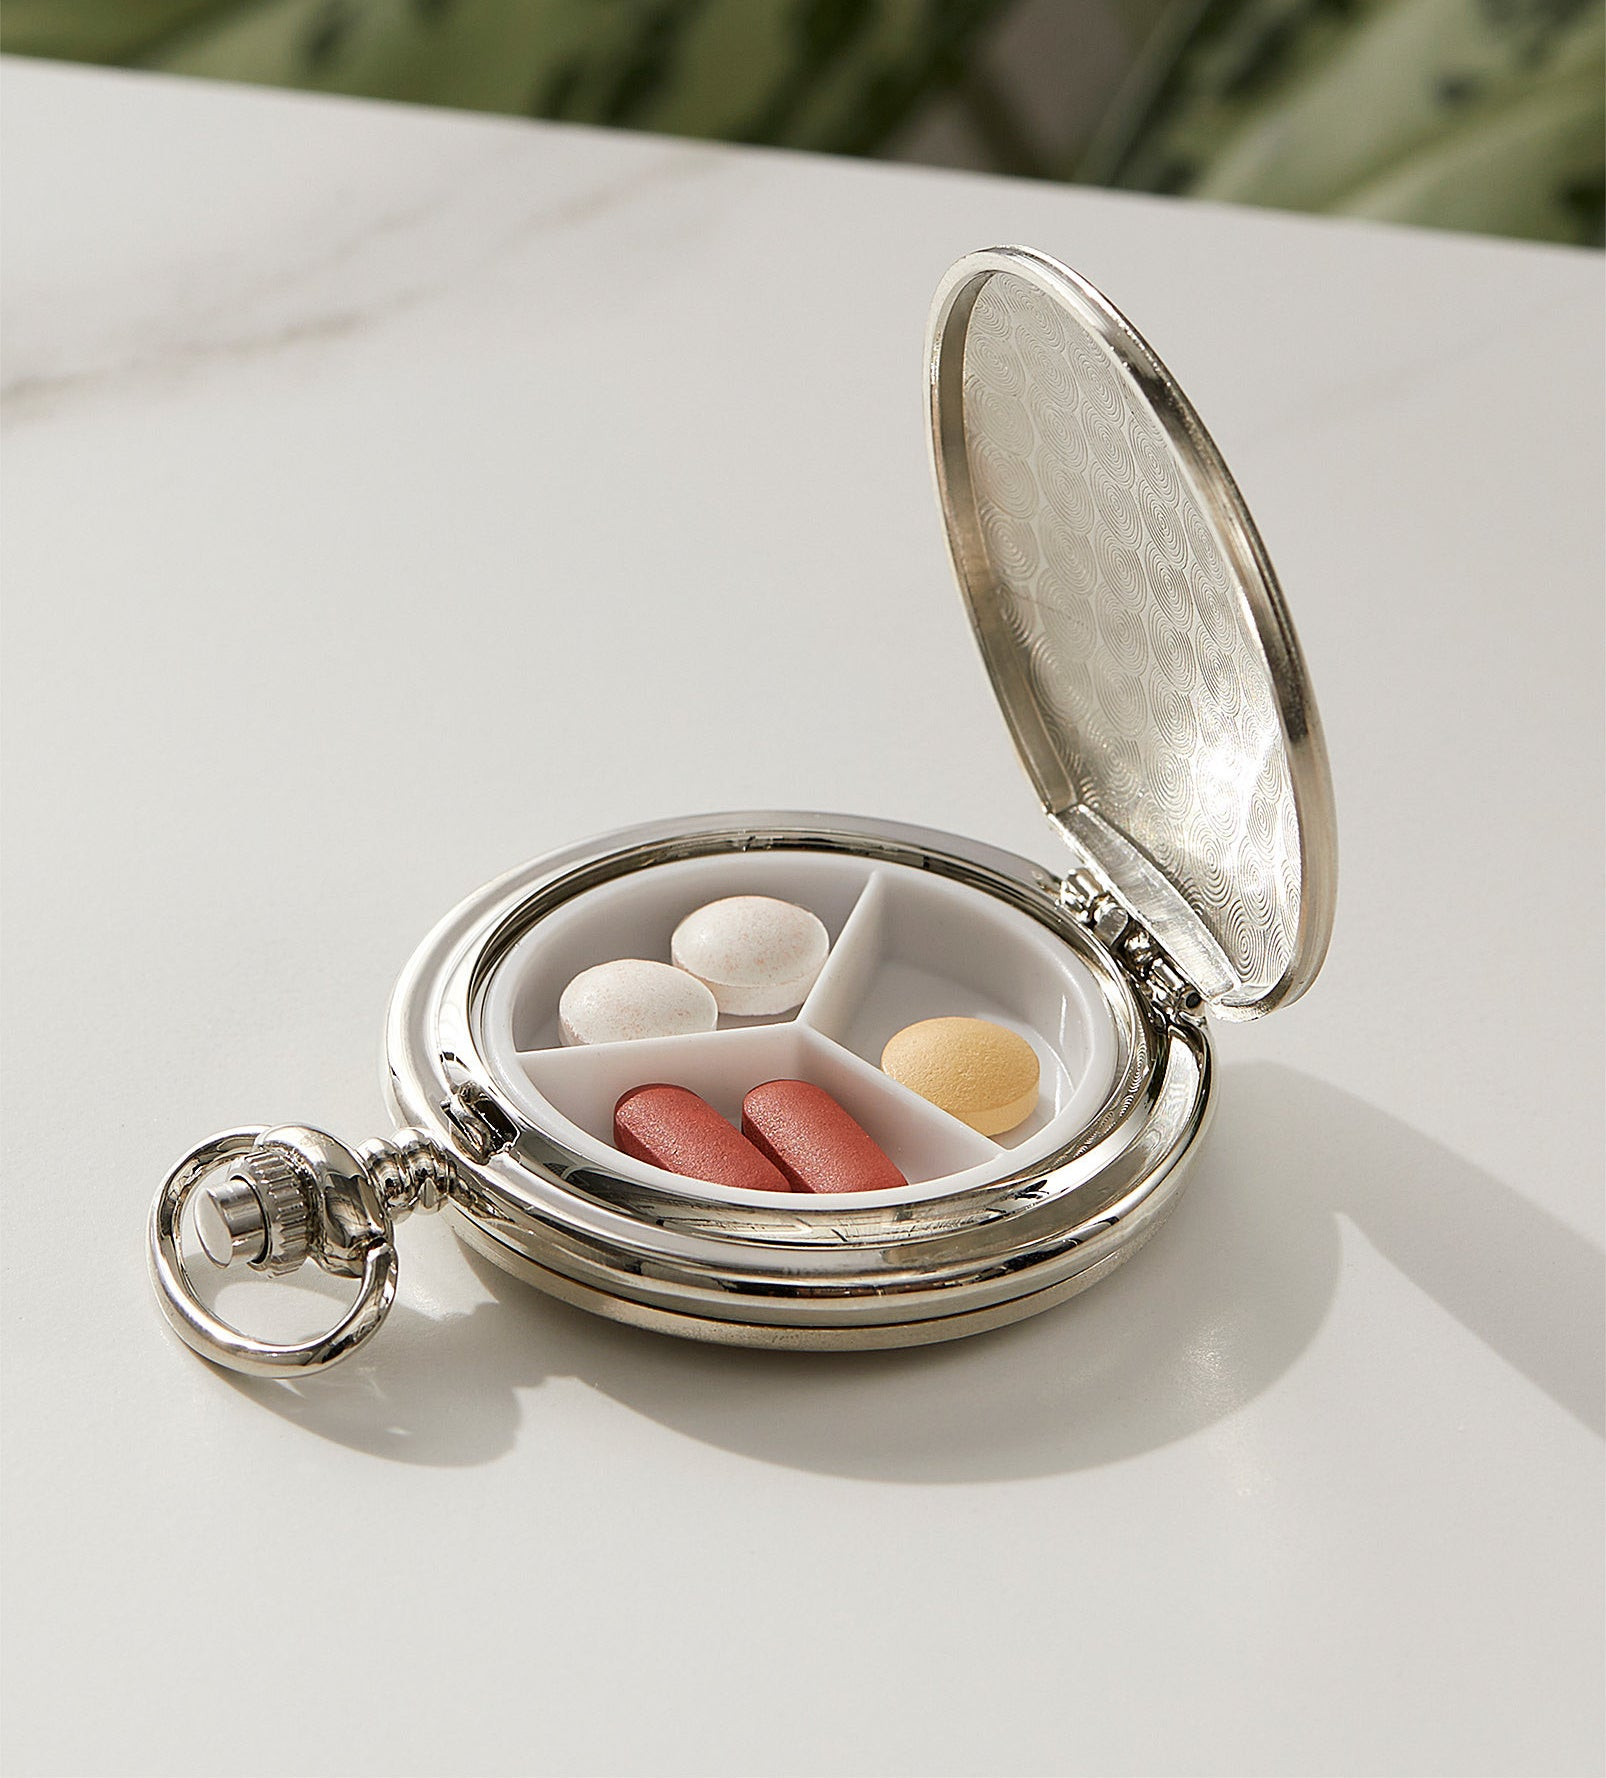 A pocket watch-shaped pill case open on a counter to show off the inner compartments